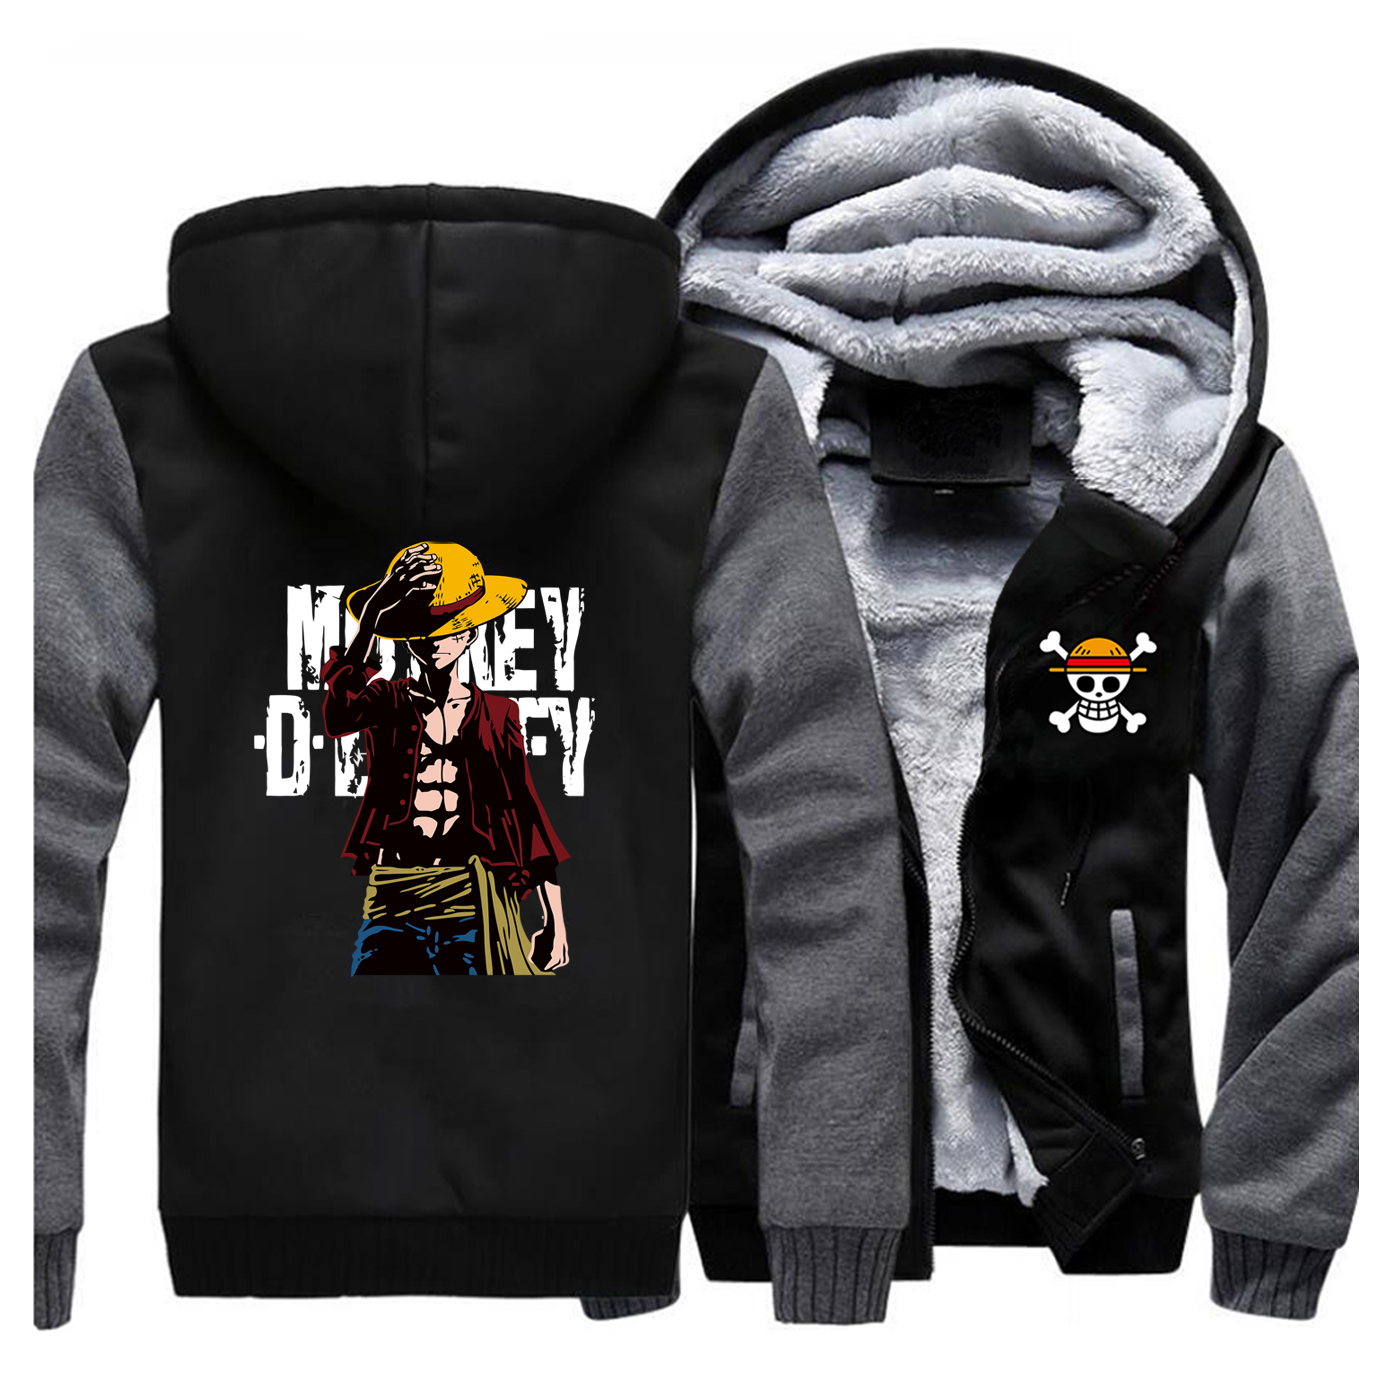 One Piece Jackets Men Luffy Japan Anime Sweatshirt Hoodies Winter Thick Zipper Fleece The Pirate King Coat Jacket Sportswear